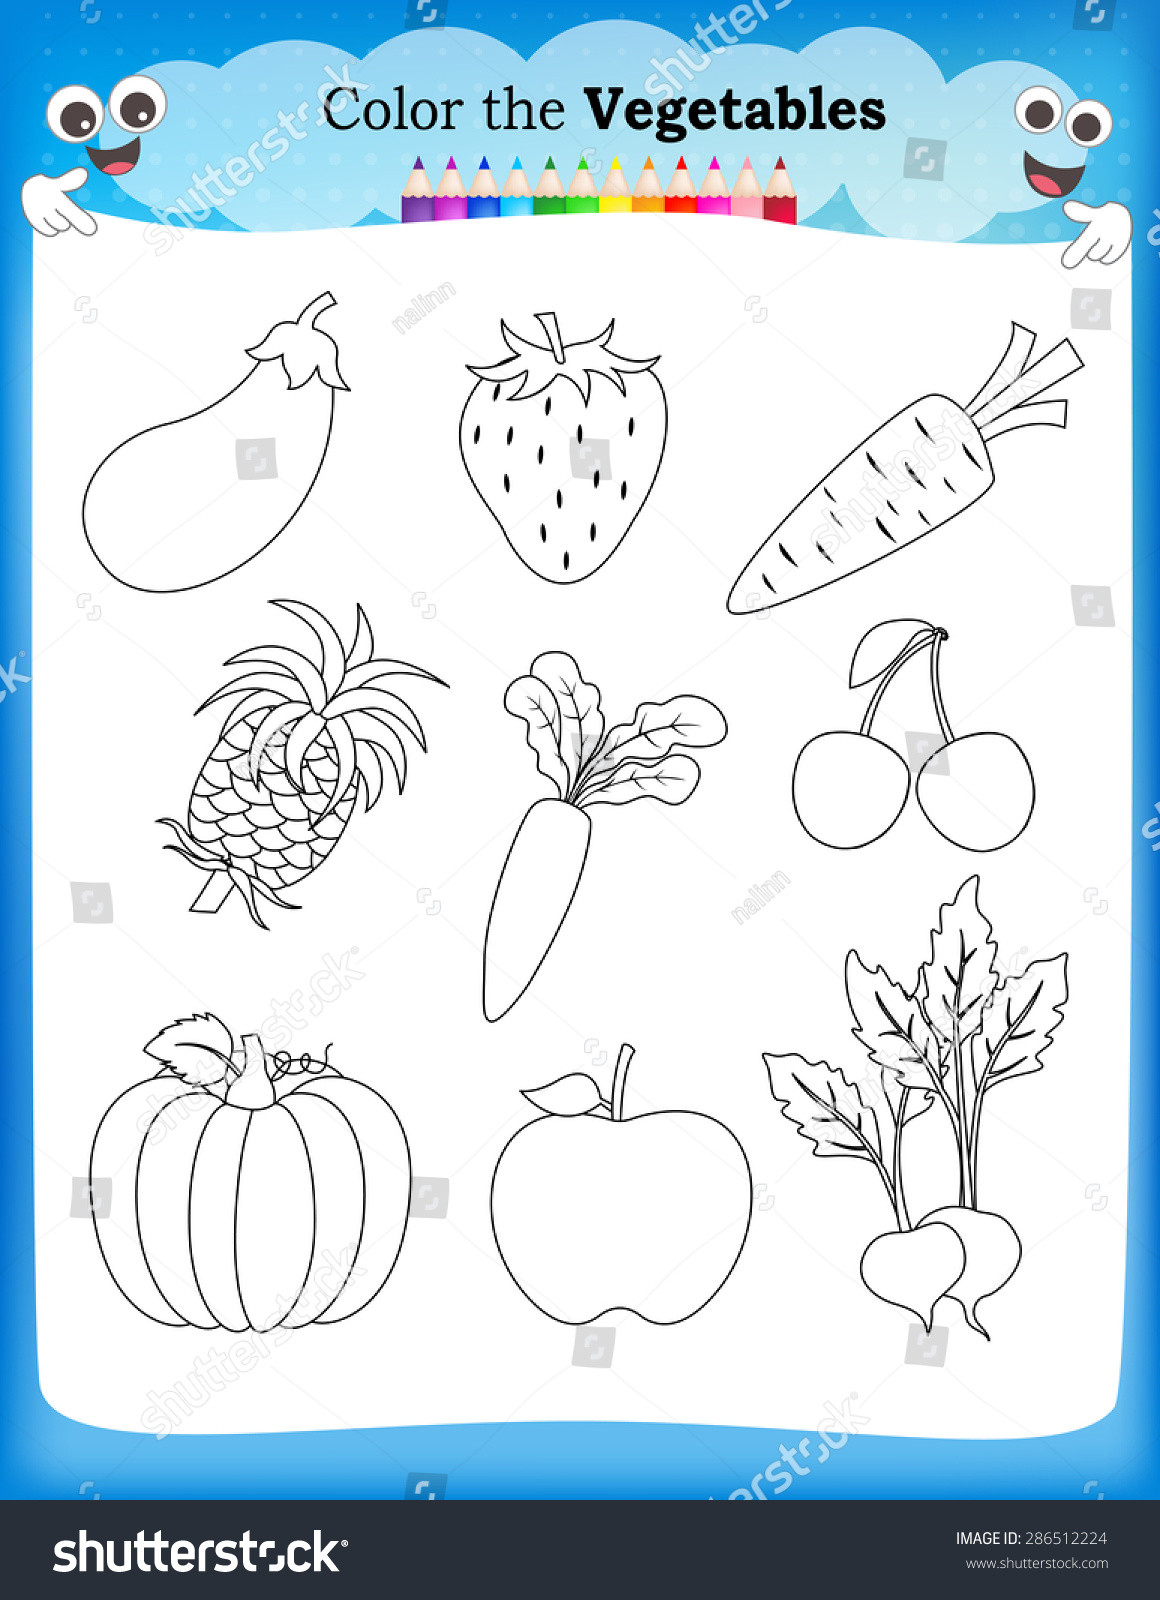 Preschool Fruits and Vegetables Worksheets Kindergarten Lesson Fruits and Ve Able Worksheet